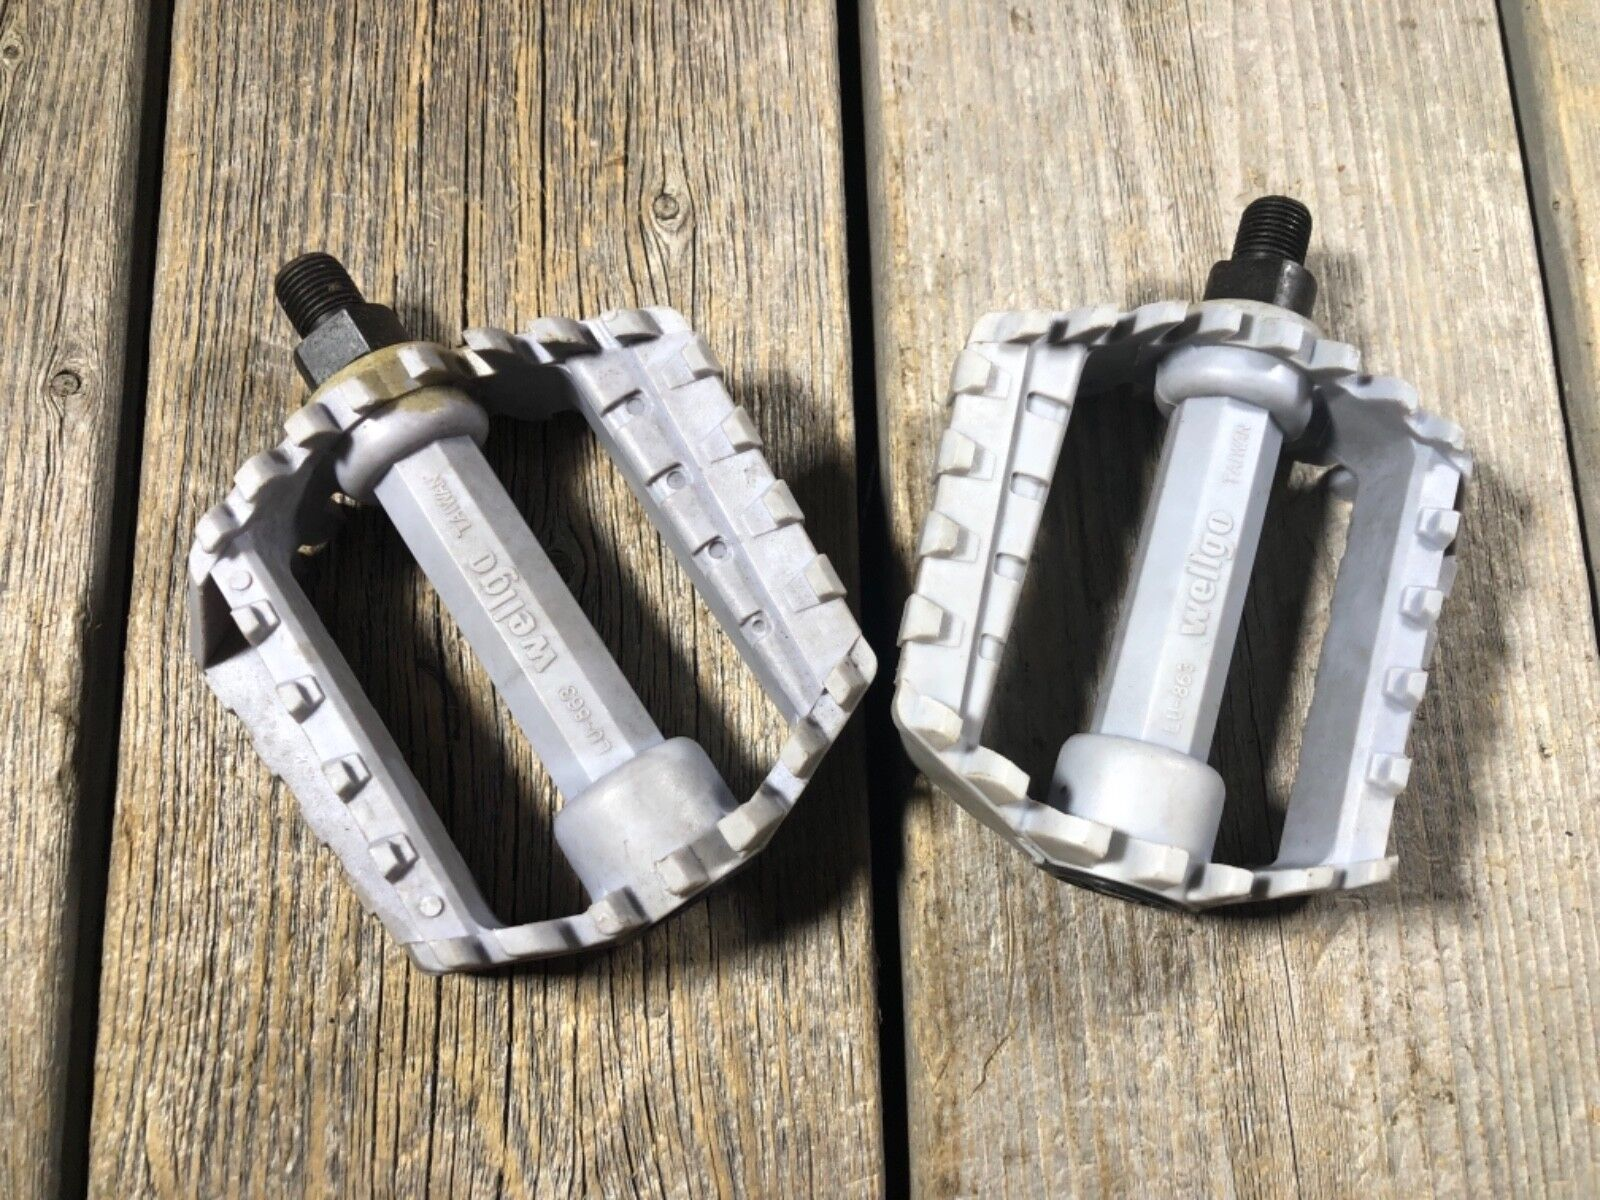 OLD SCHOOL BMX  PEDALS MX WELLGO LU-863 PEDALS 1 2 FREESTYLE ROUND TAIWAN NOS  promotions